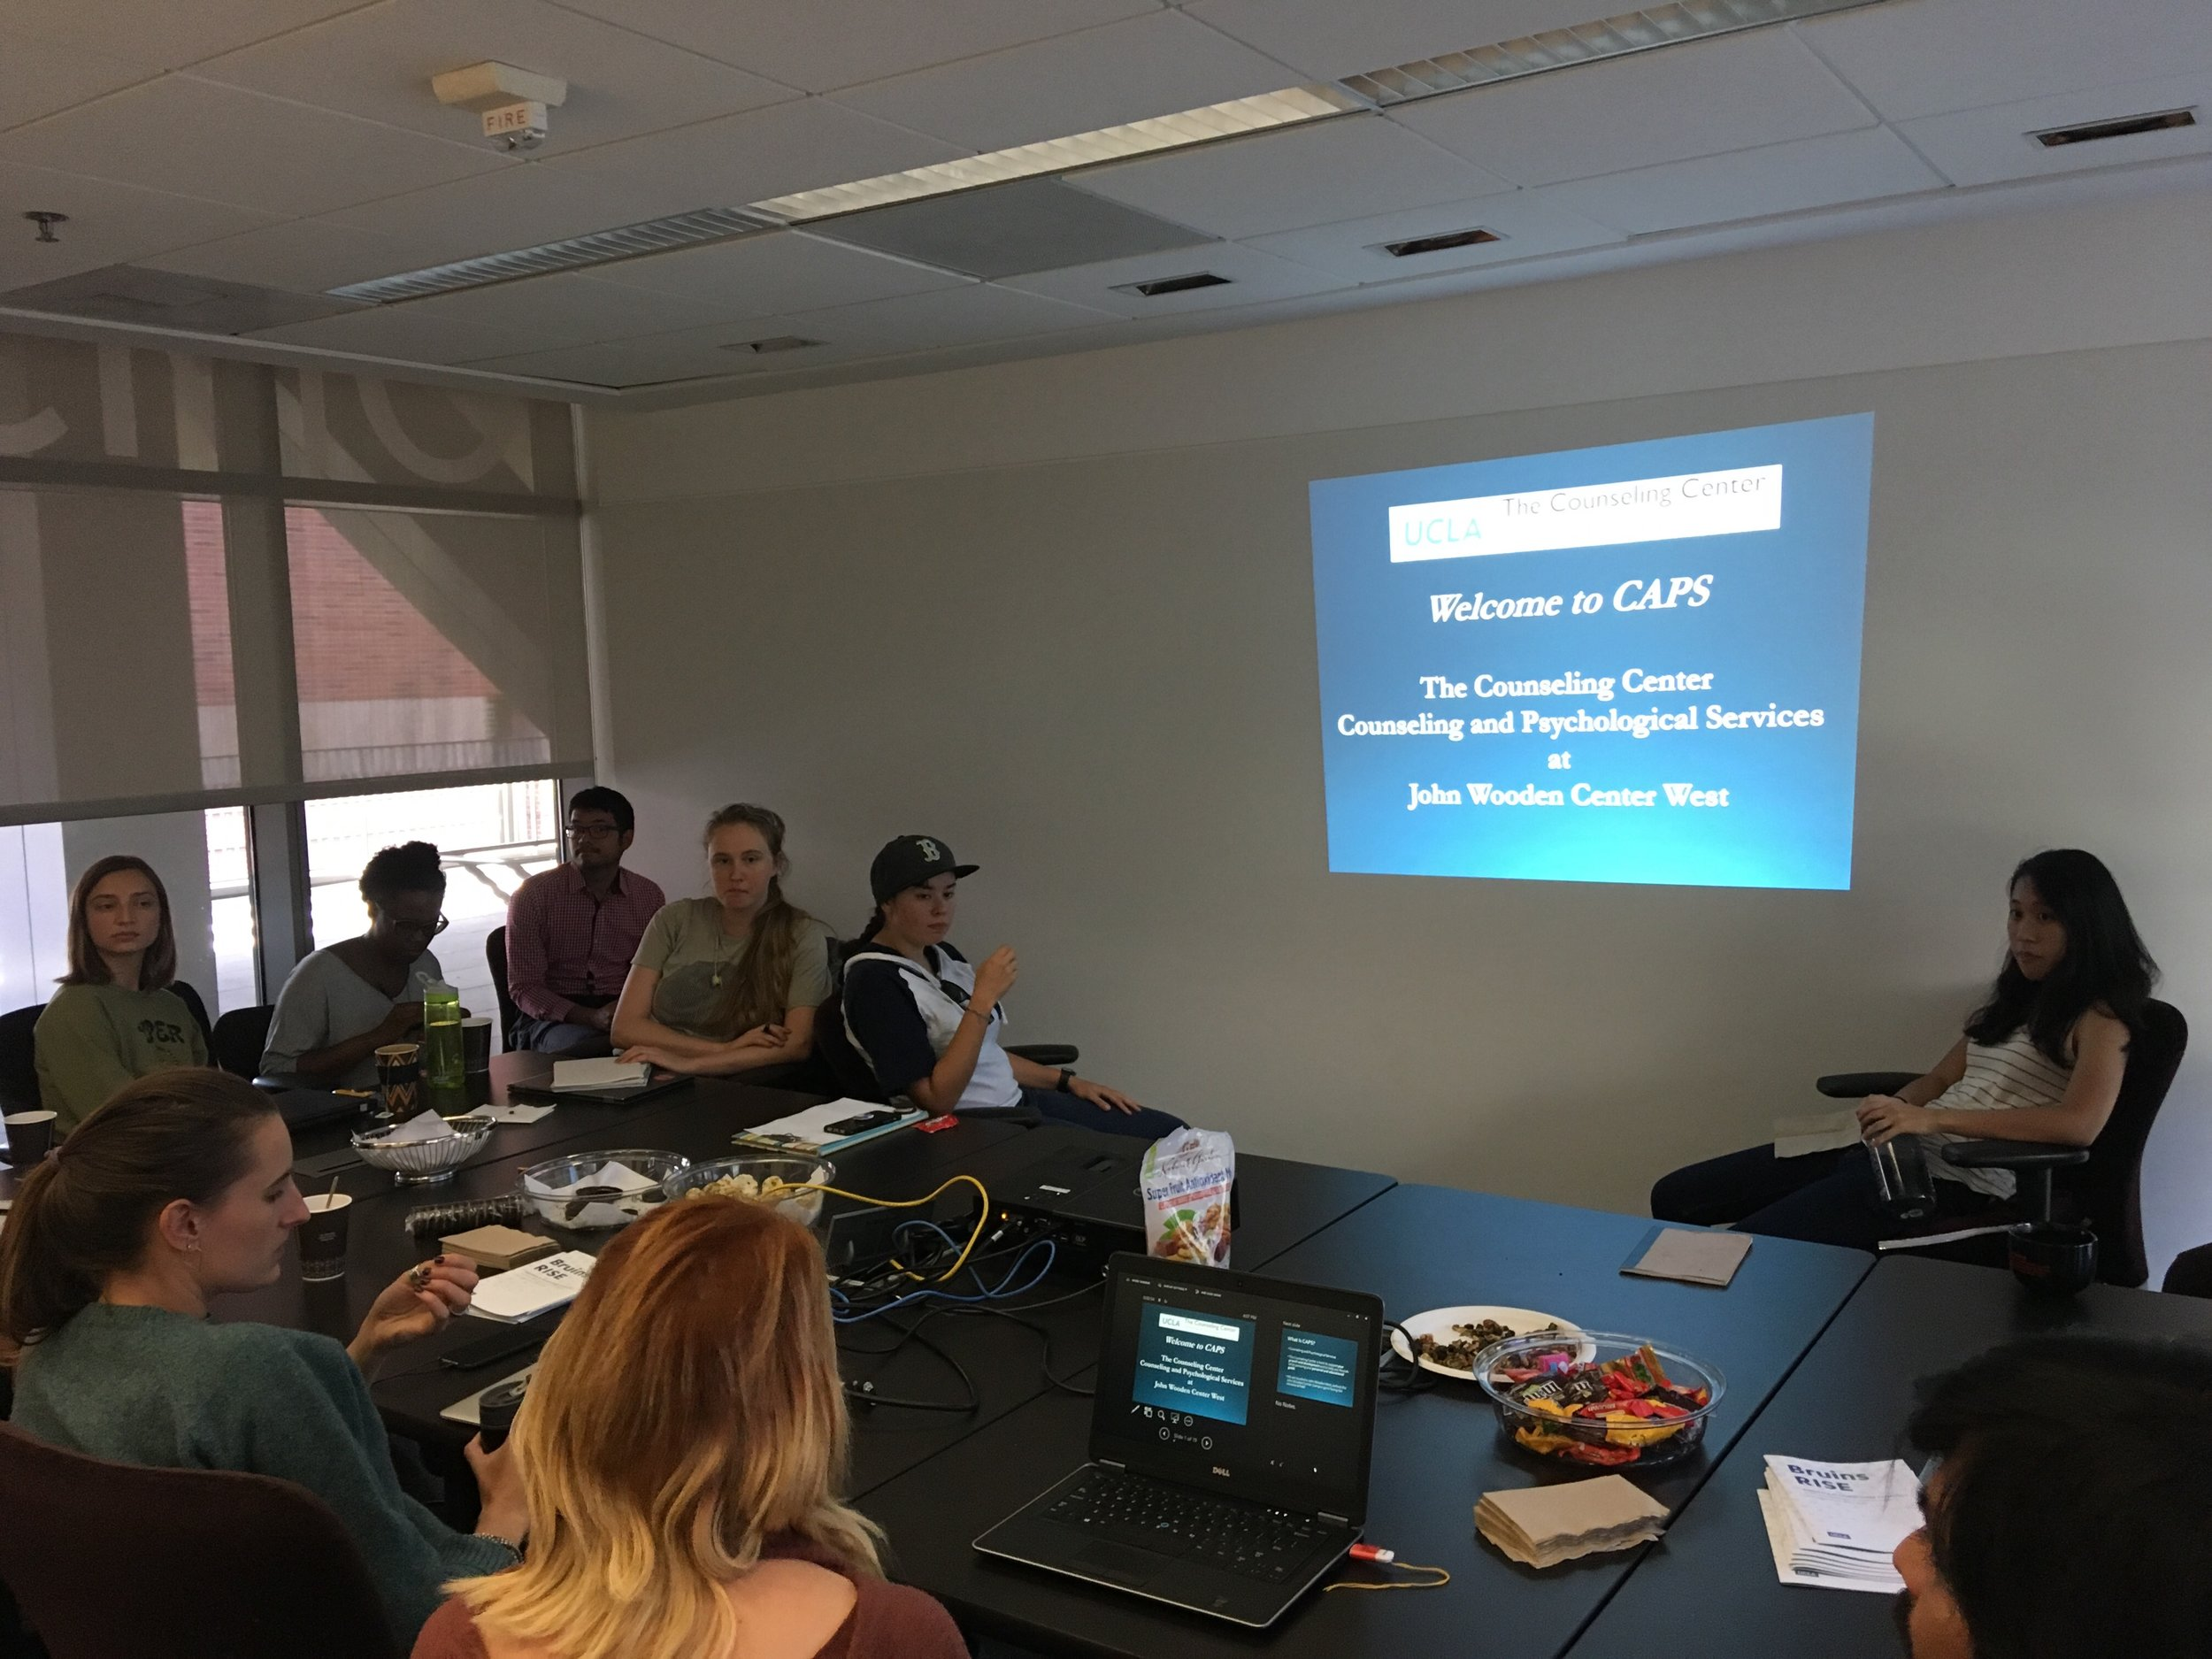 October 11, 2018: Brown Bag Seminar on UCLA Counseling and Psychological Services